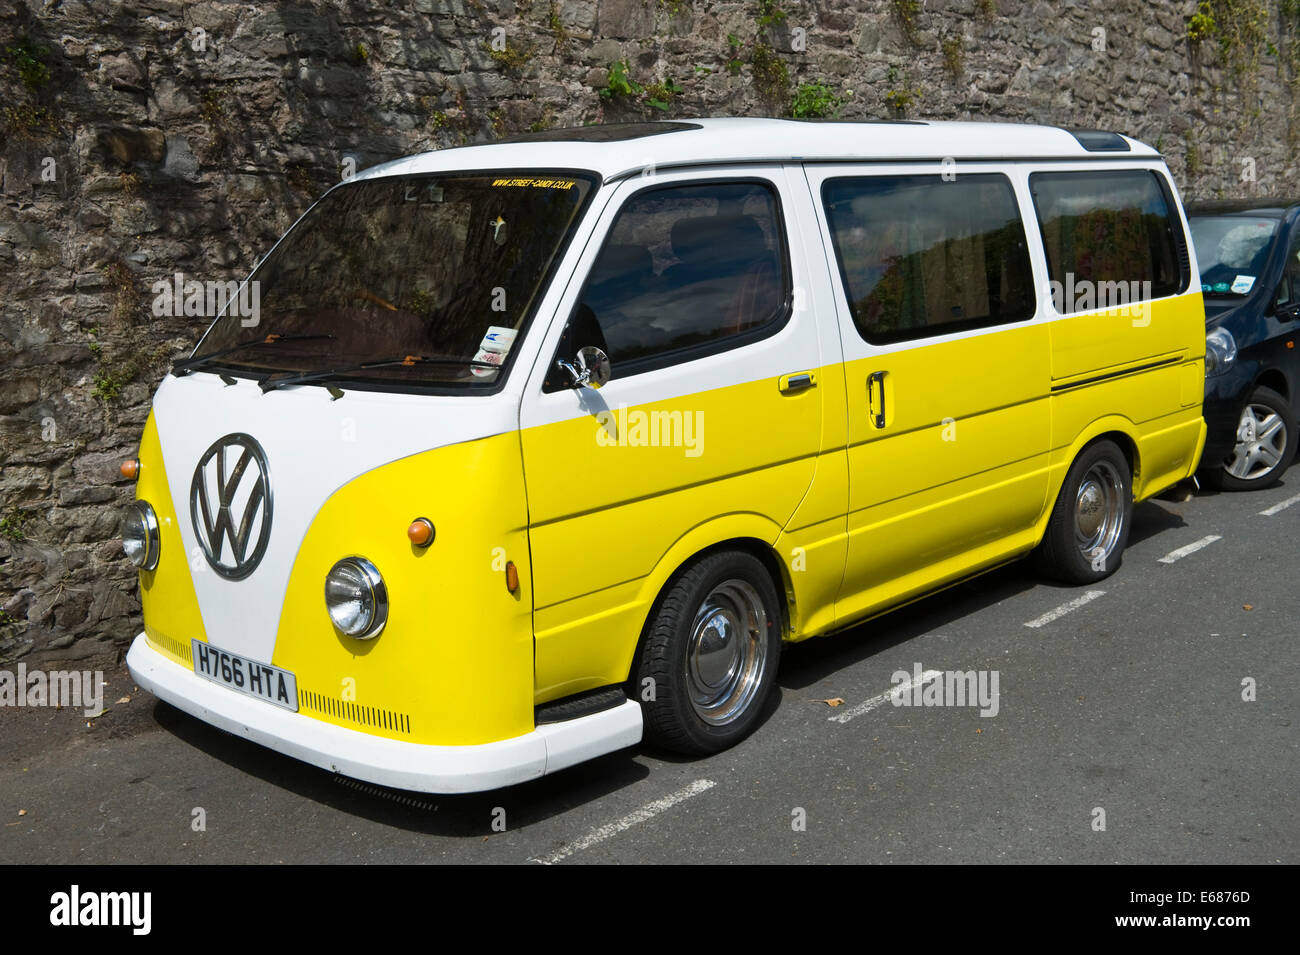 Yellow White VW Camper Van Parked On The Street Brecon Powys Wales UK